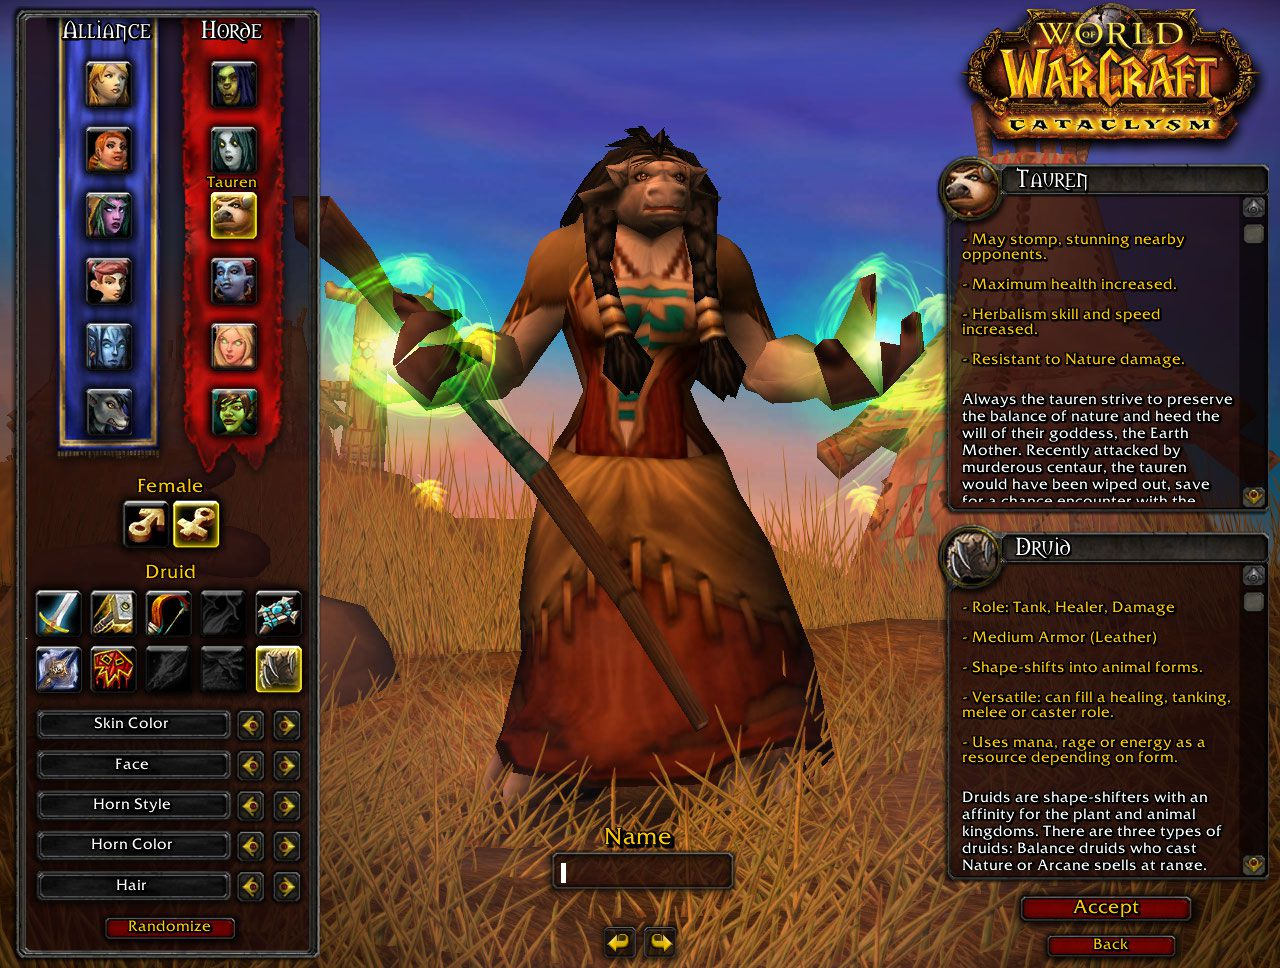 how to take screenshts in wow